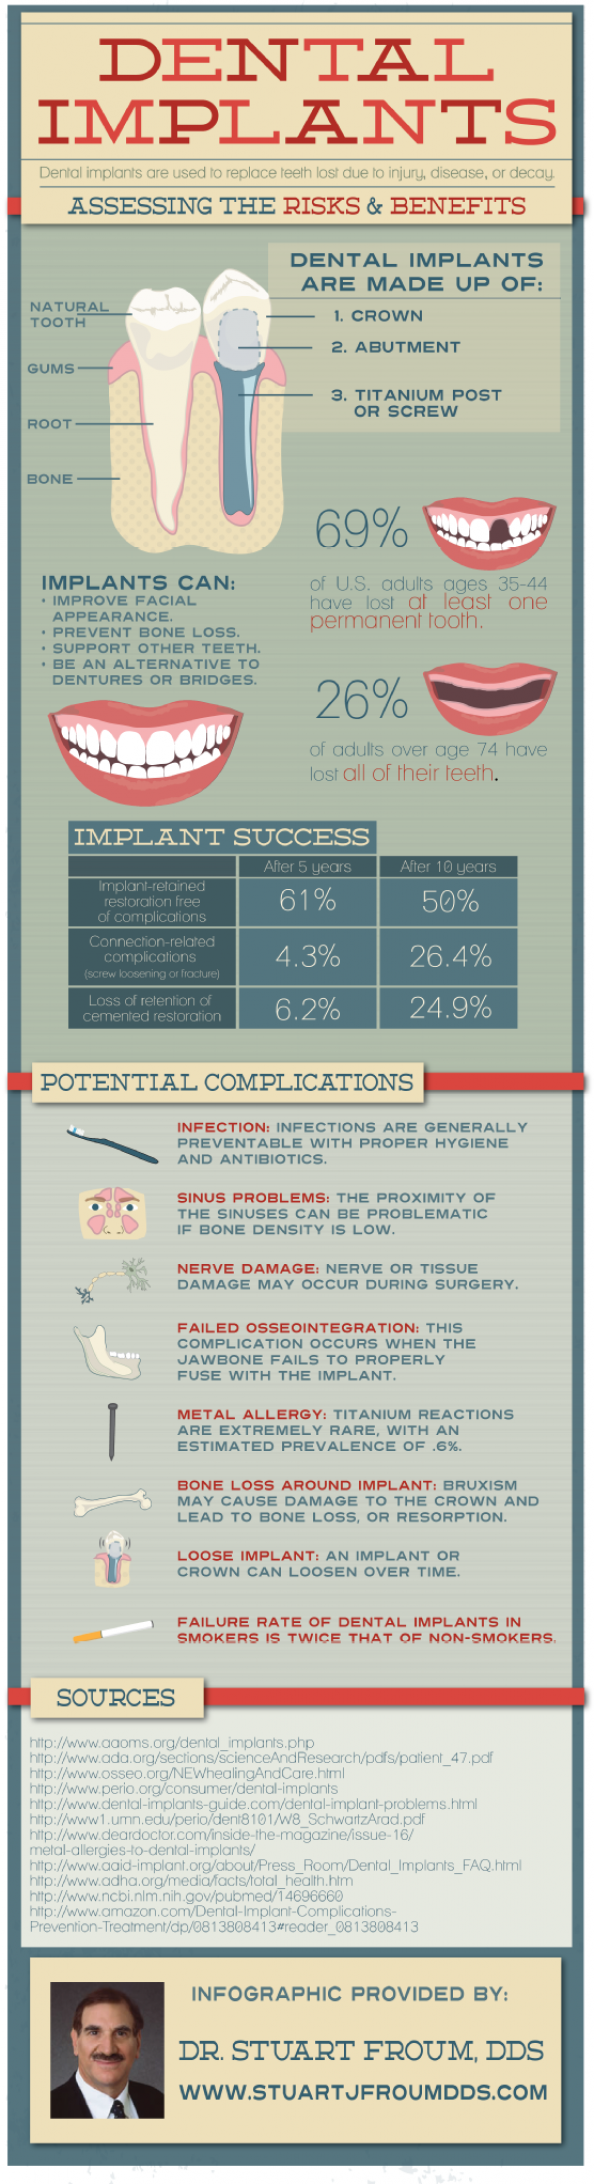 Dental Implants: Assessing the Risks & Benefits  Infographic